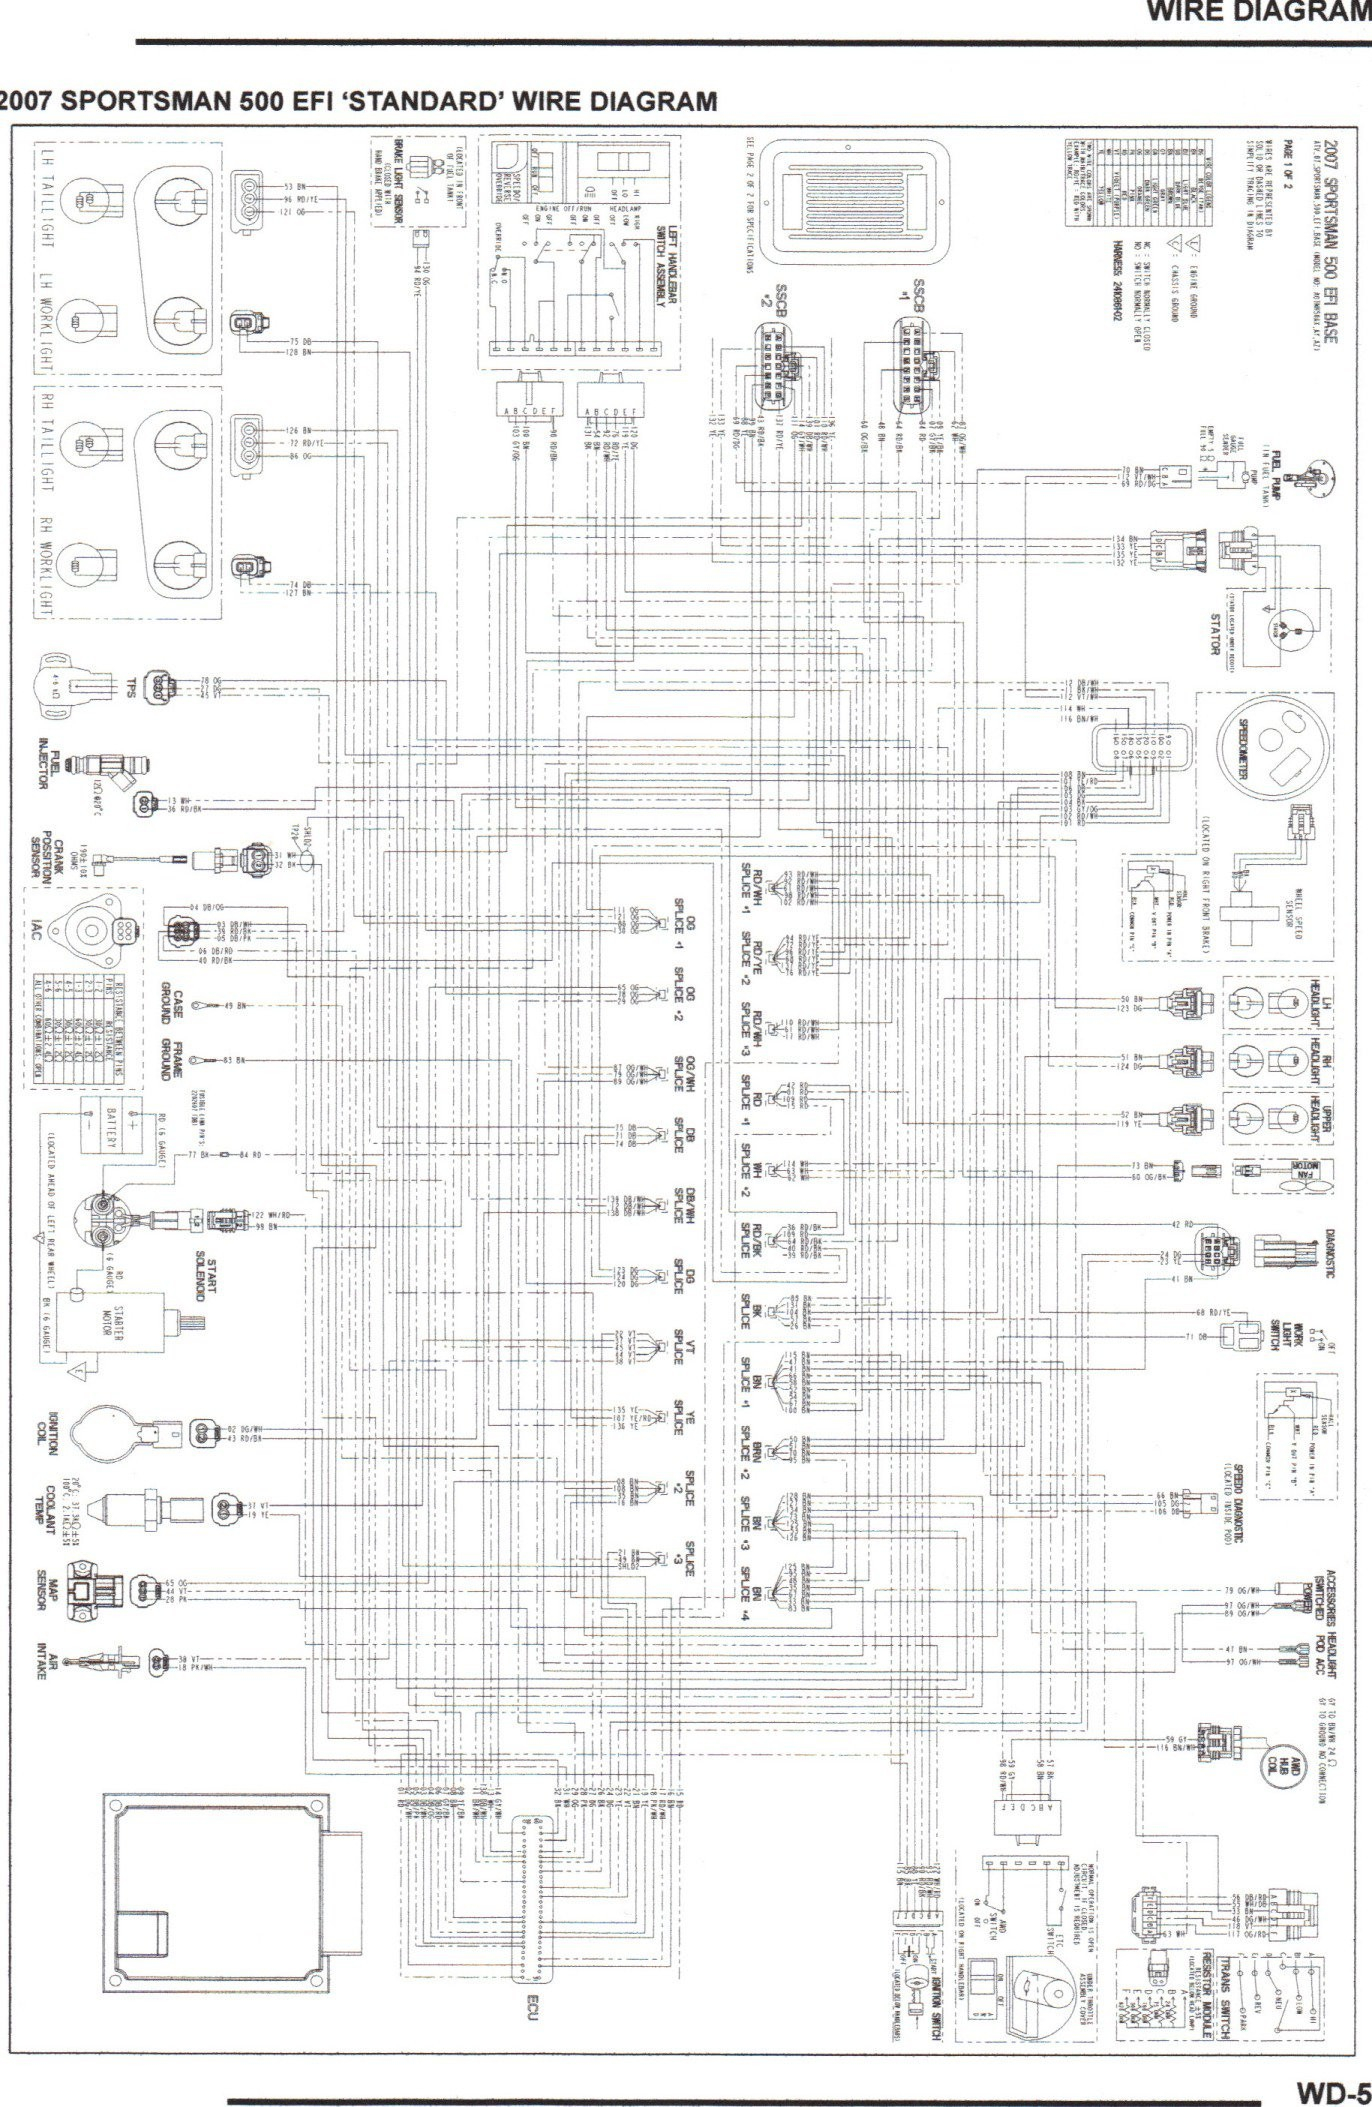 Polari Sportsman 500 Wiring Diagram